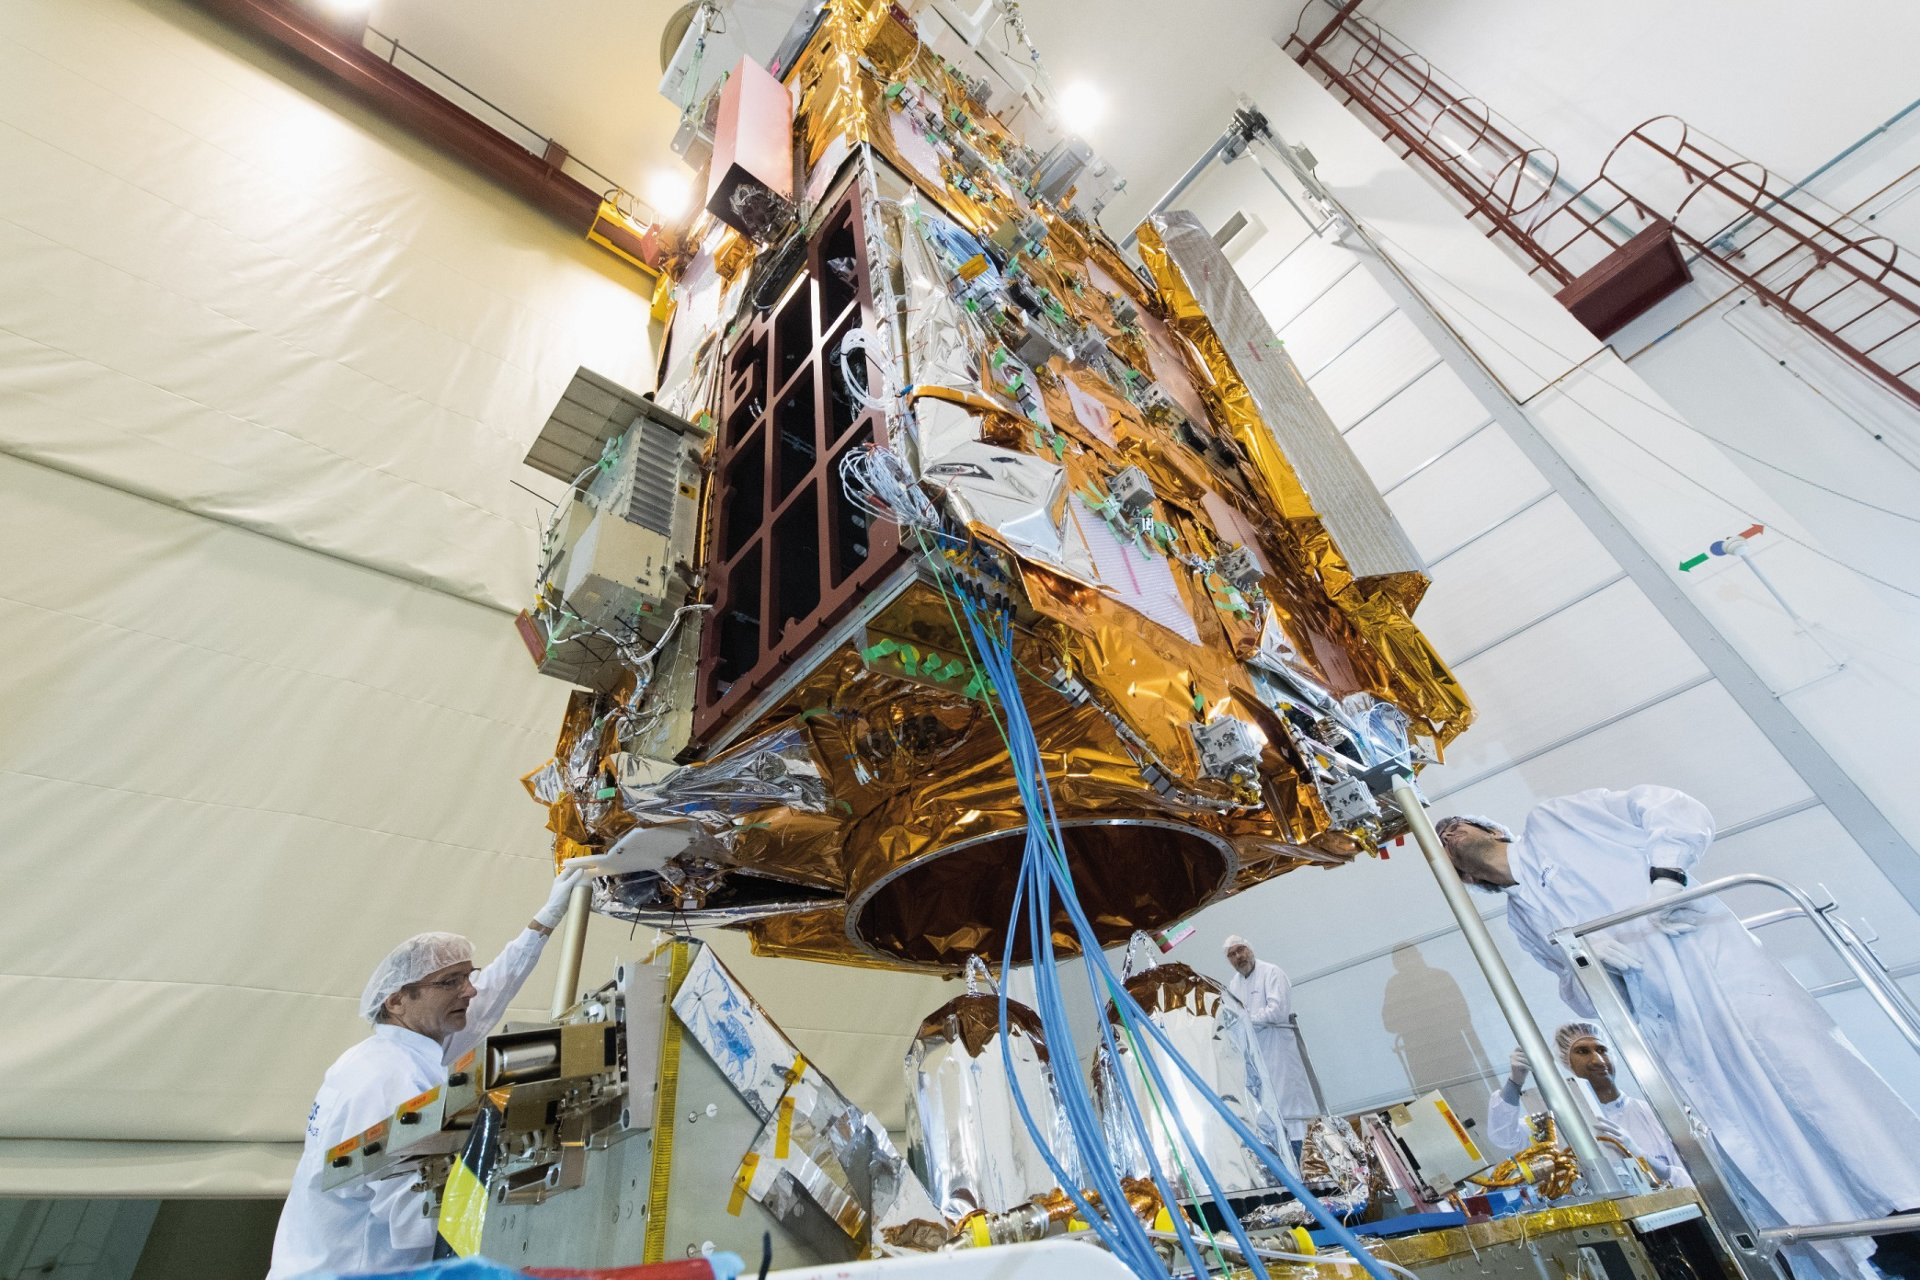 The MetOp-C satellite platform was successfully coupled to the payload in Airbus clean room in Toulouse